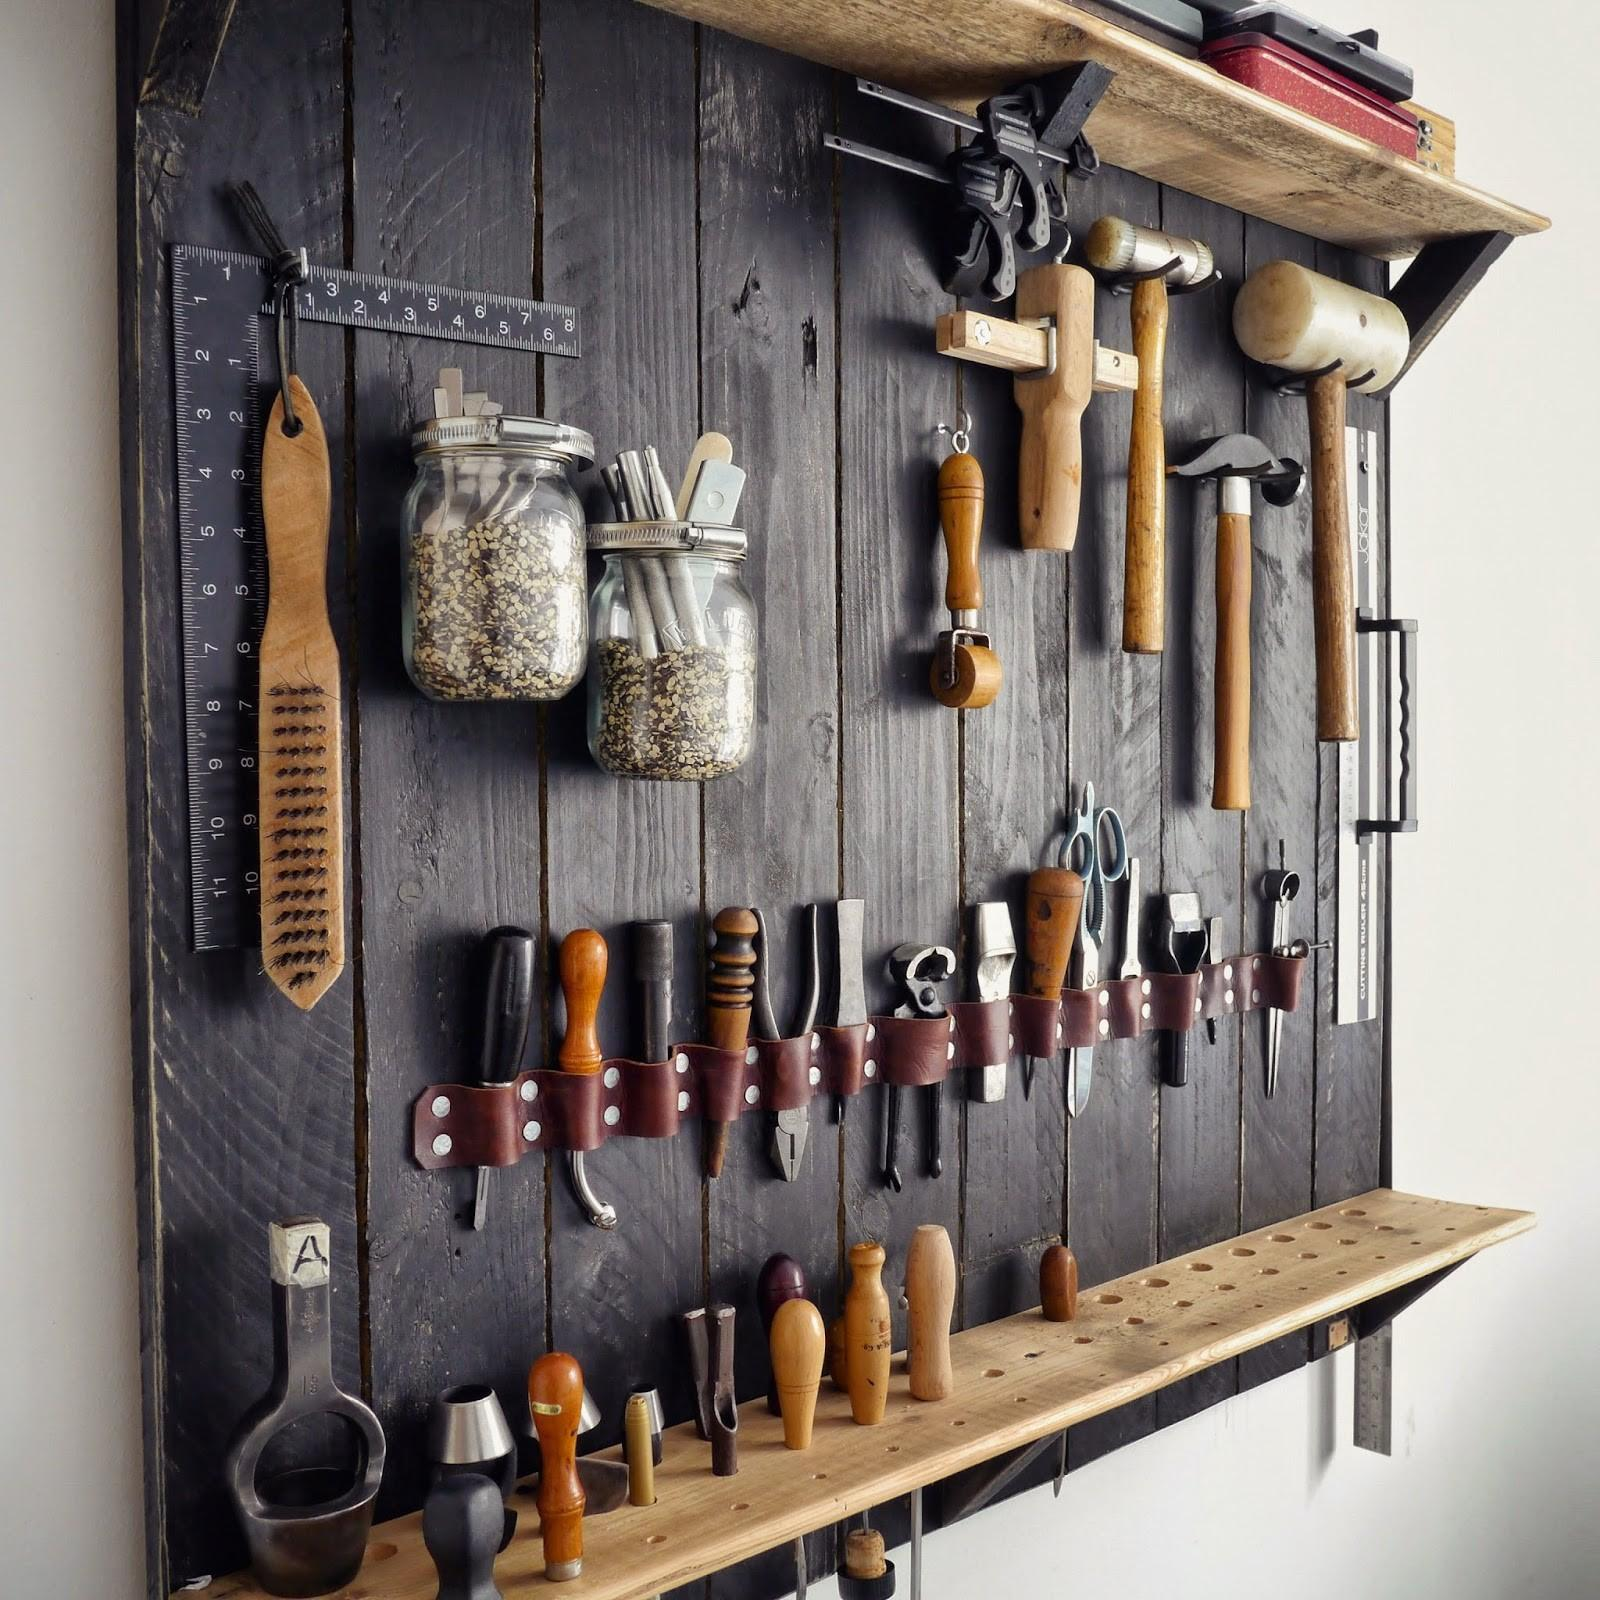 Kingsley Leather Hanging New Tool Rack